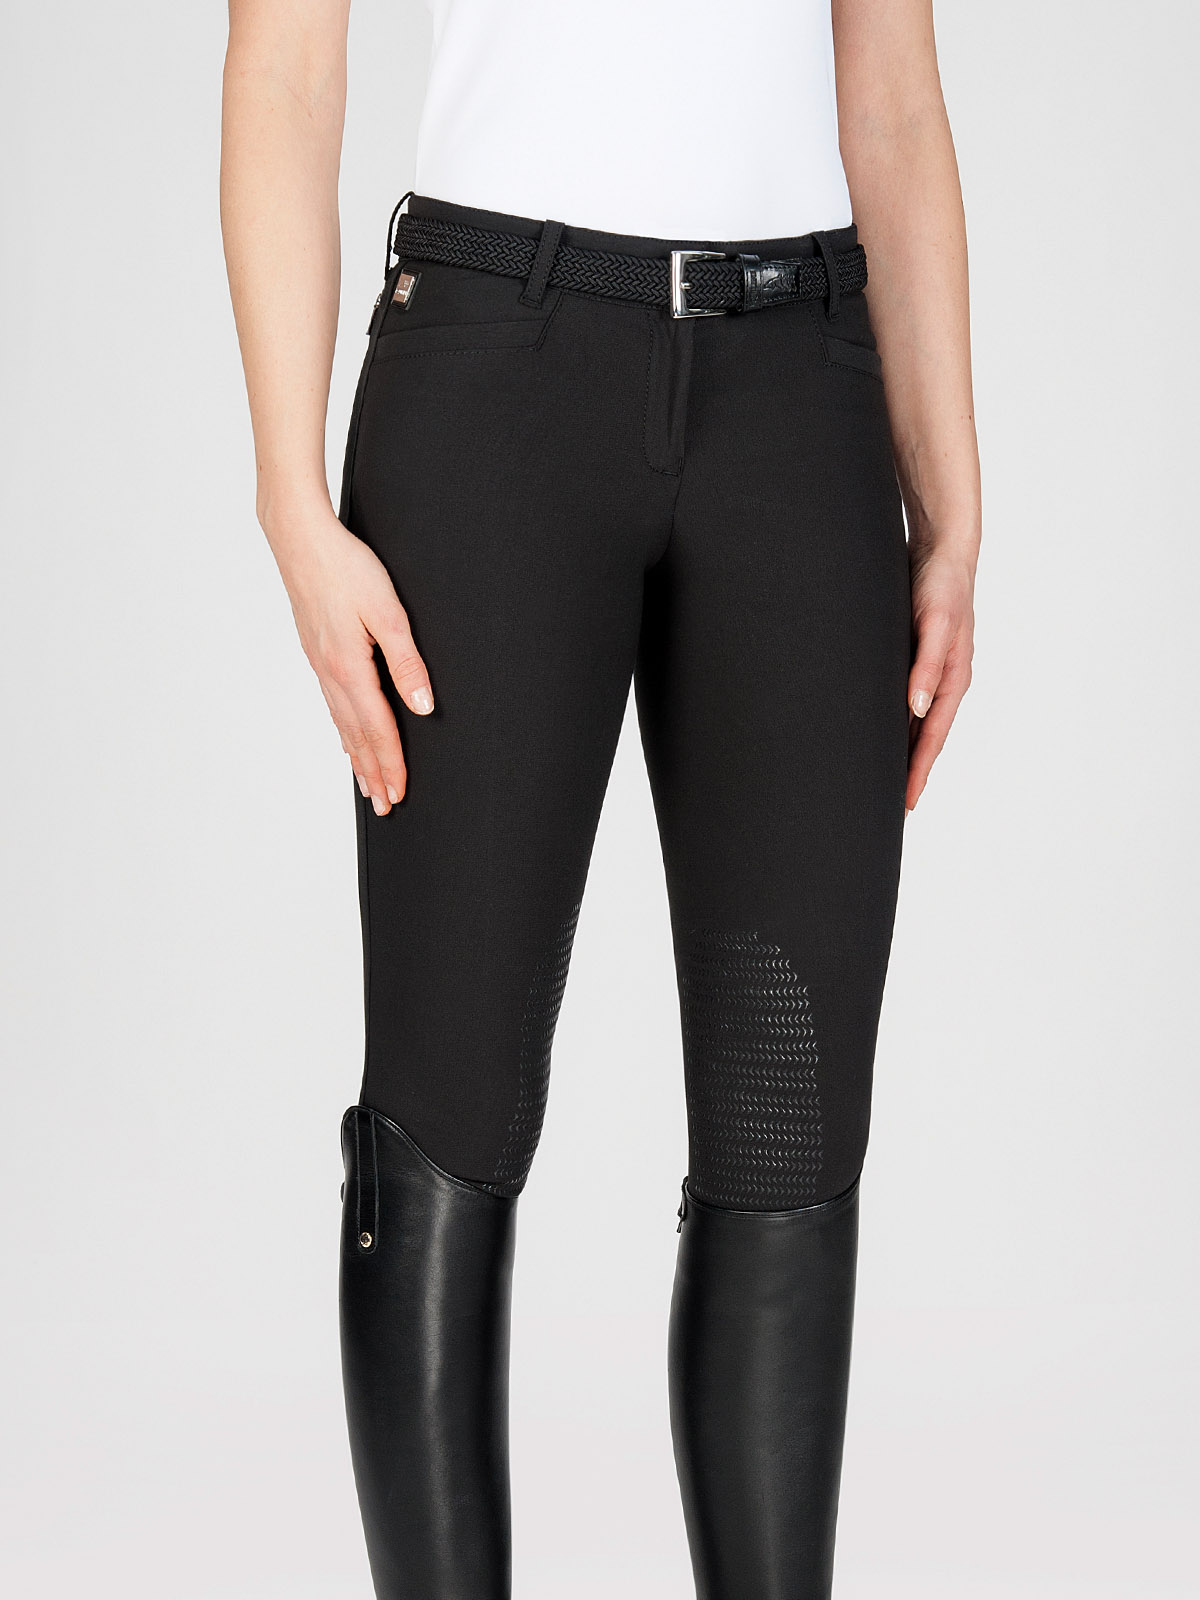 ASH Women's Riding Breeches with X-Grip Knee Patch in black